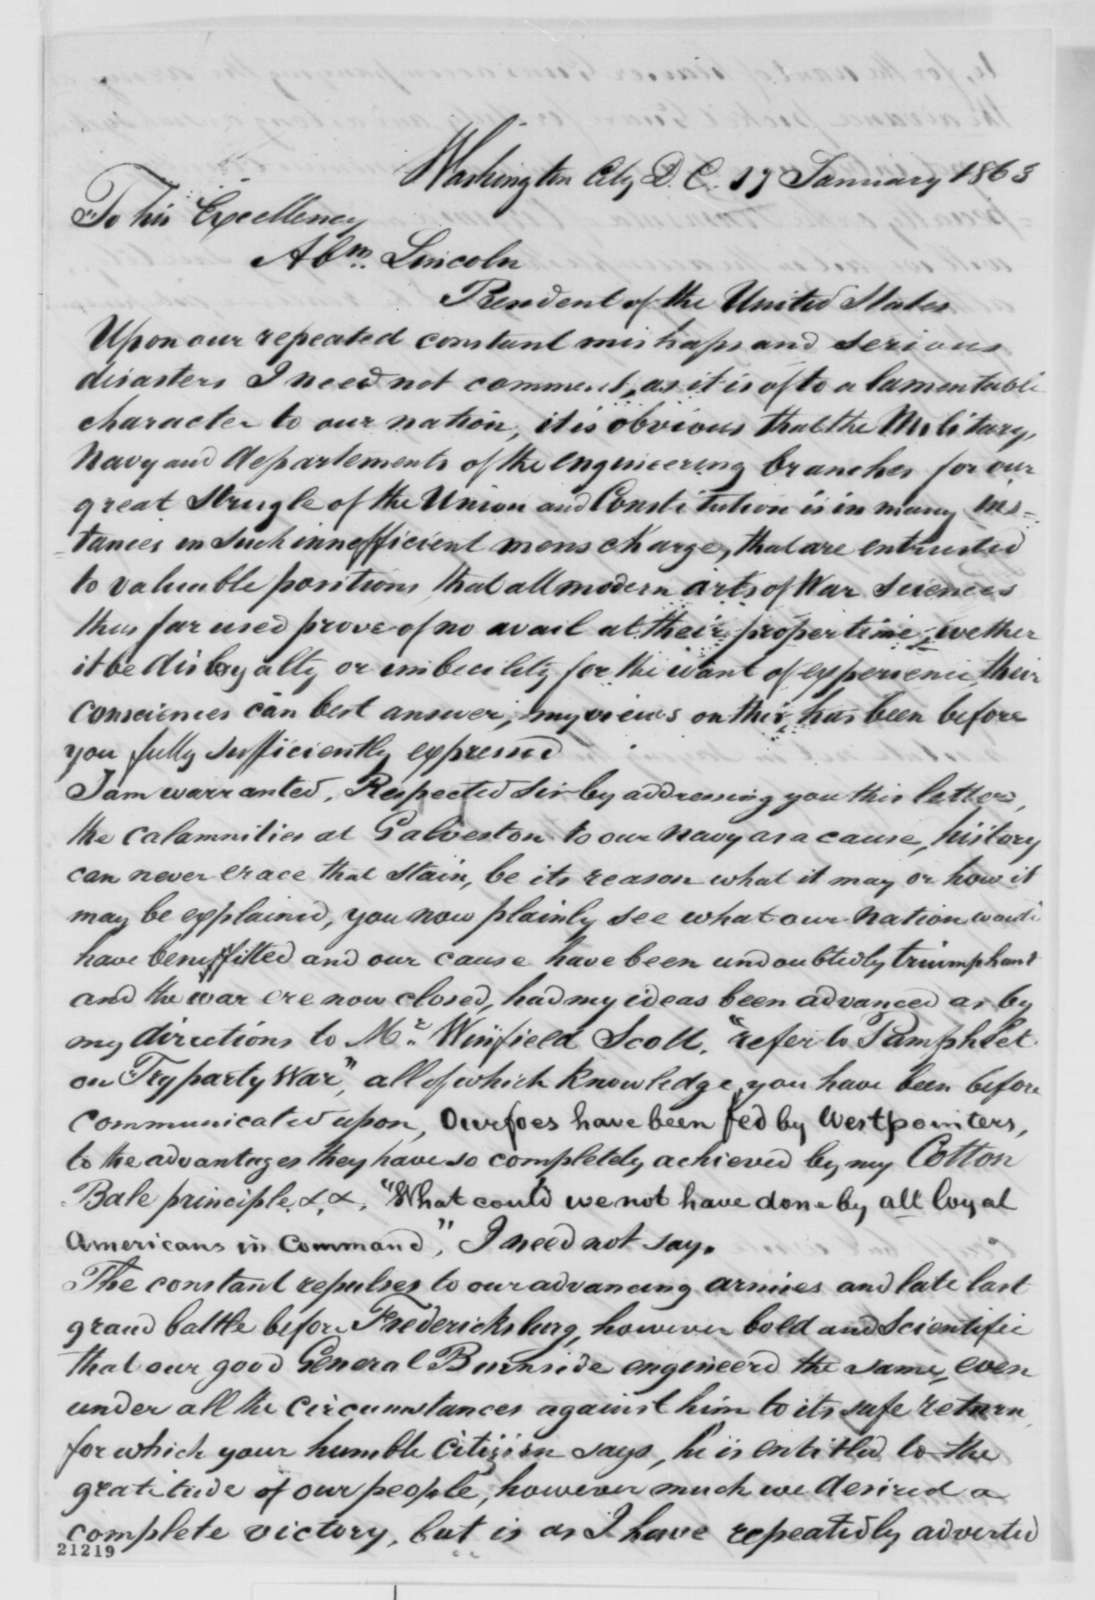 Rowland Cromelien to Abraham Lincoln, Saturday, January 17, 1863  (Wants government to buy his railroad track for transporting heavy guns)